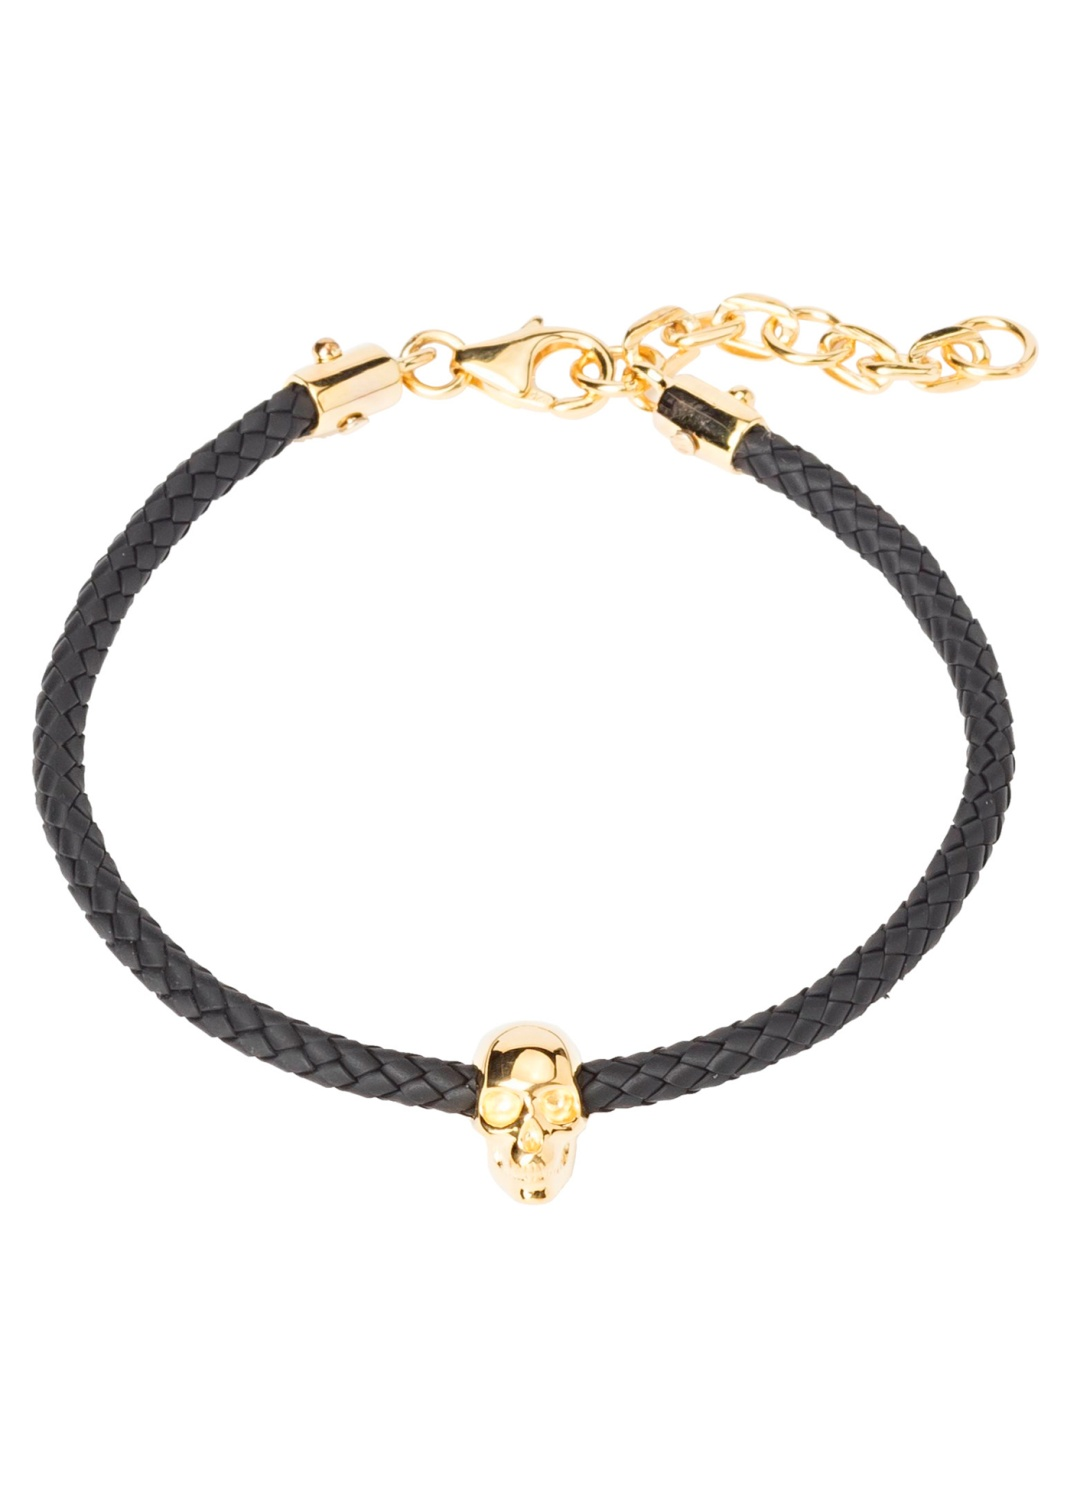 ATTICUS SKULL RUBBER CORD BRACELET IN BLACK AND GOLD image number 0